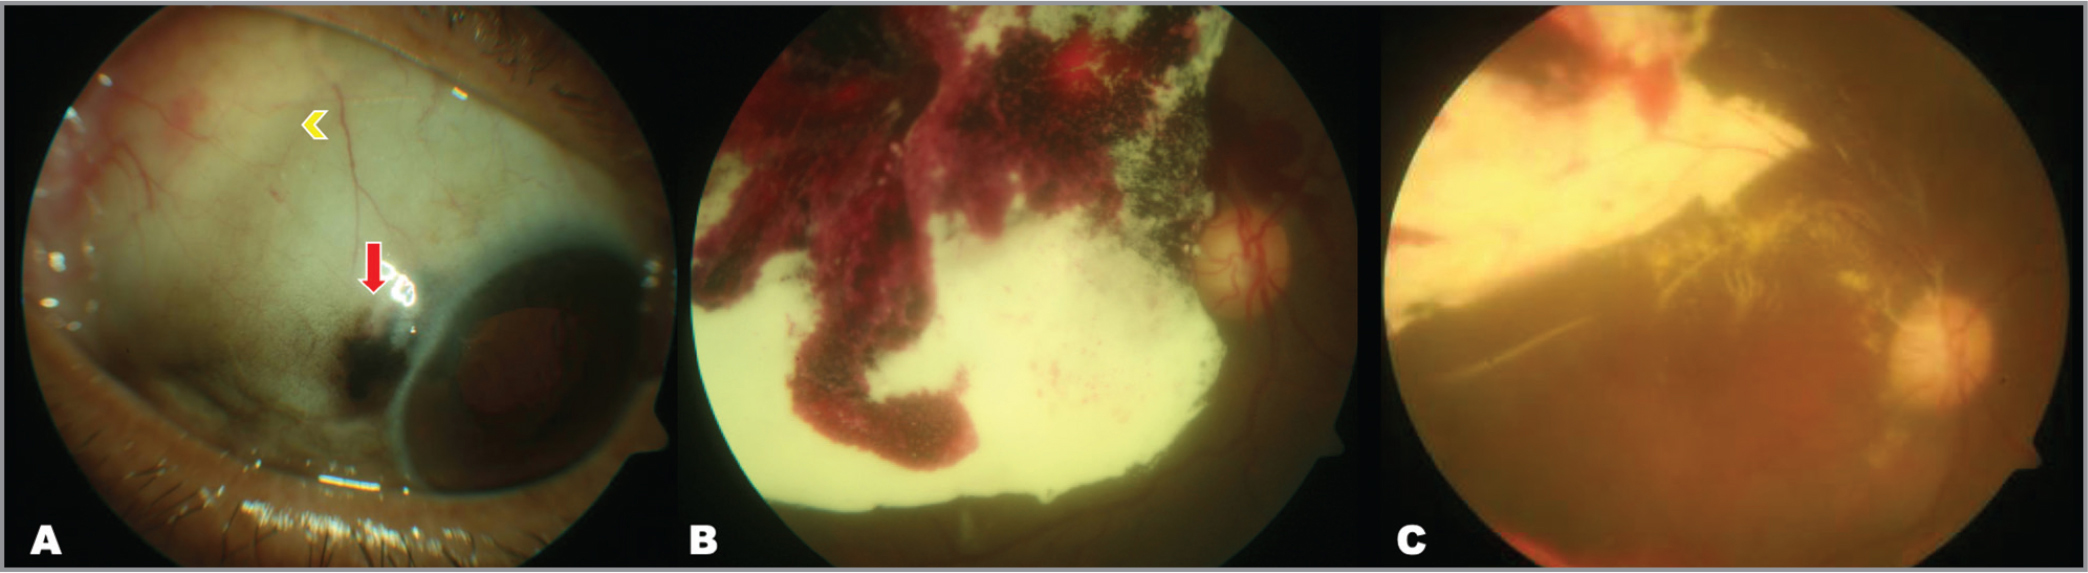 Globe perforation during posterior sub-Tenon's injection of triamcinolone acetonide. (A) Anterior segment photograph showing sub-Tenon's deposit of triamcinolone in the superotemporal quadrant (yellow arrow) with uveal show at the 10-o'clock suggestive of globe rupture (red arrow). (B) Fundus photograph of the right eye showing sub-macular triamcinolone with subretinal and vitreous hemorrhage. (C) Fundus photograph 6 months after vitrectomy showing attached retina with presence of residual subretinal triamcinolone superior to the fovea.